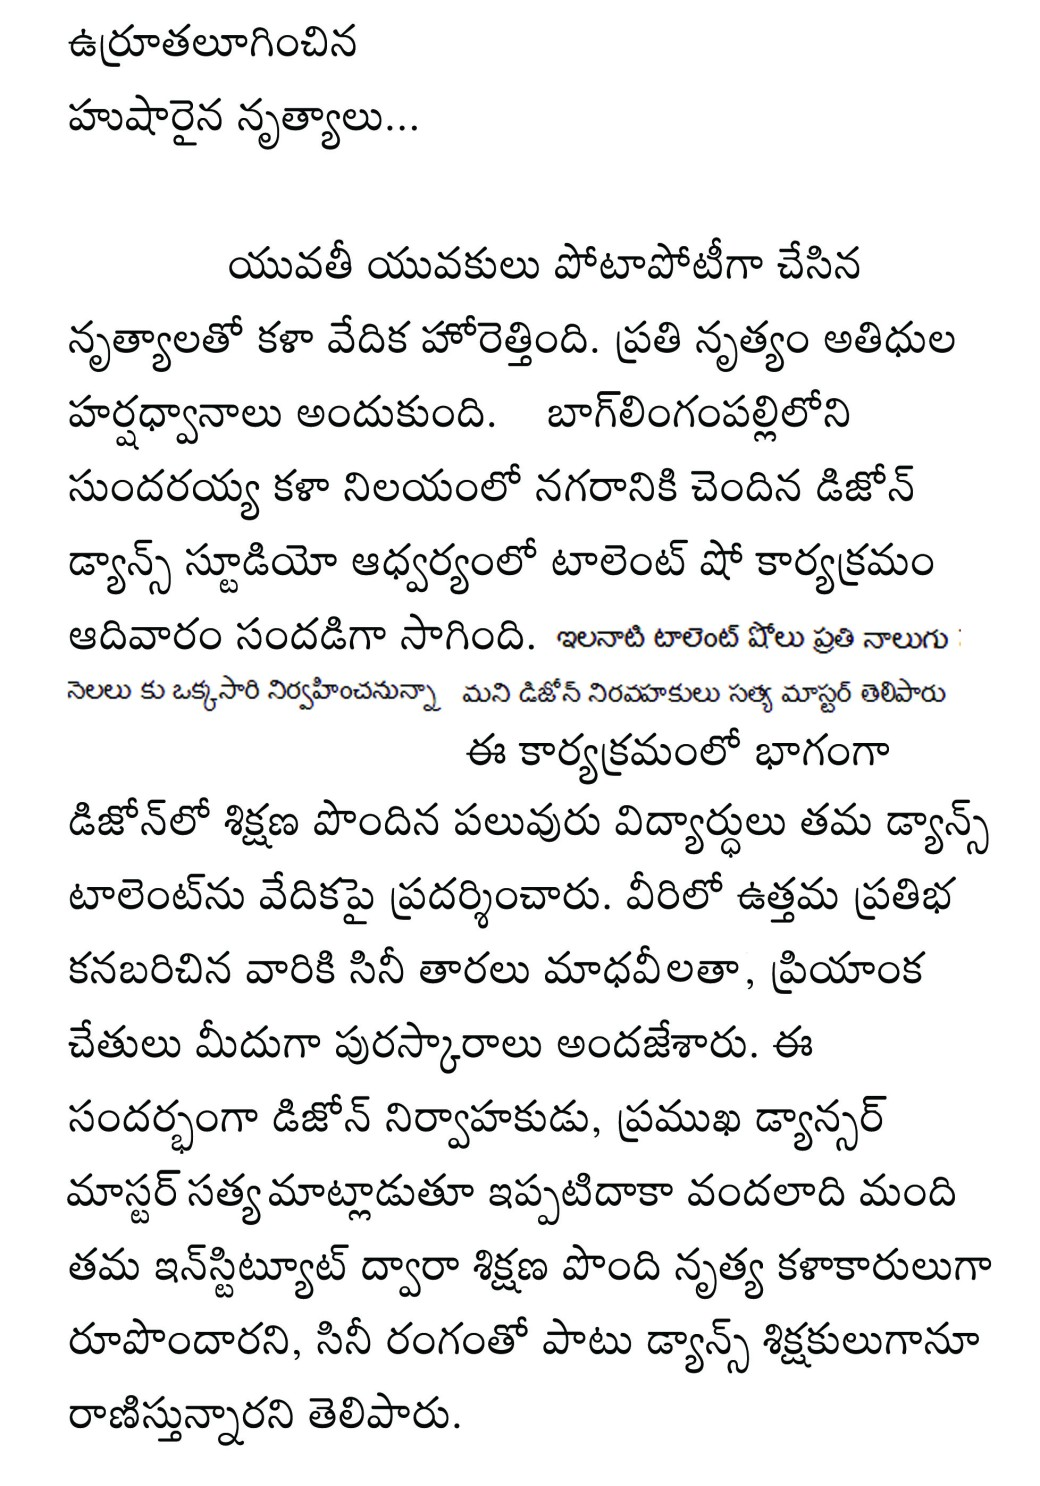 Telugu press note.jpg